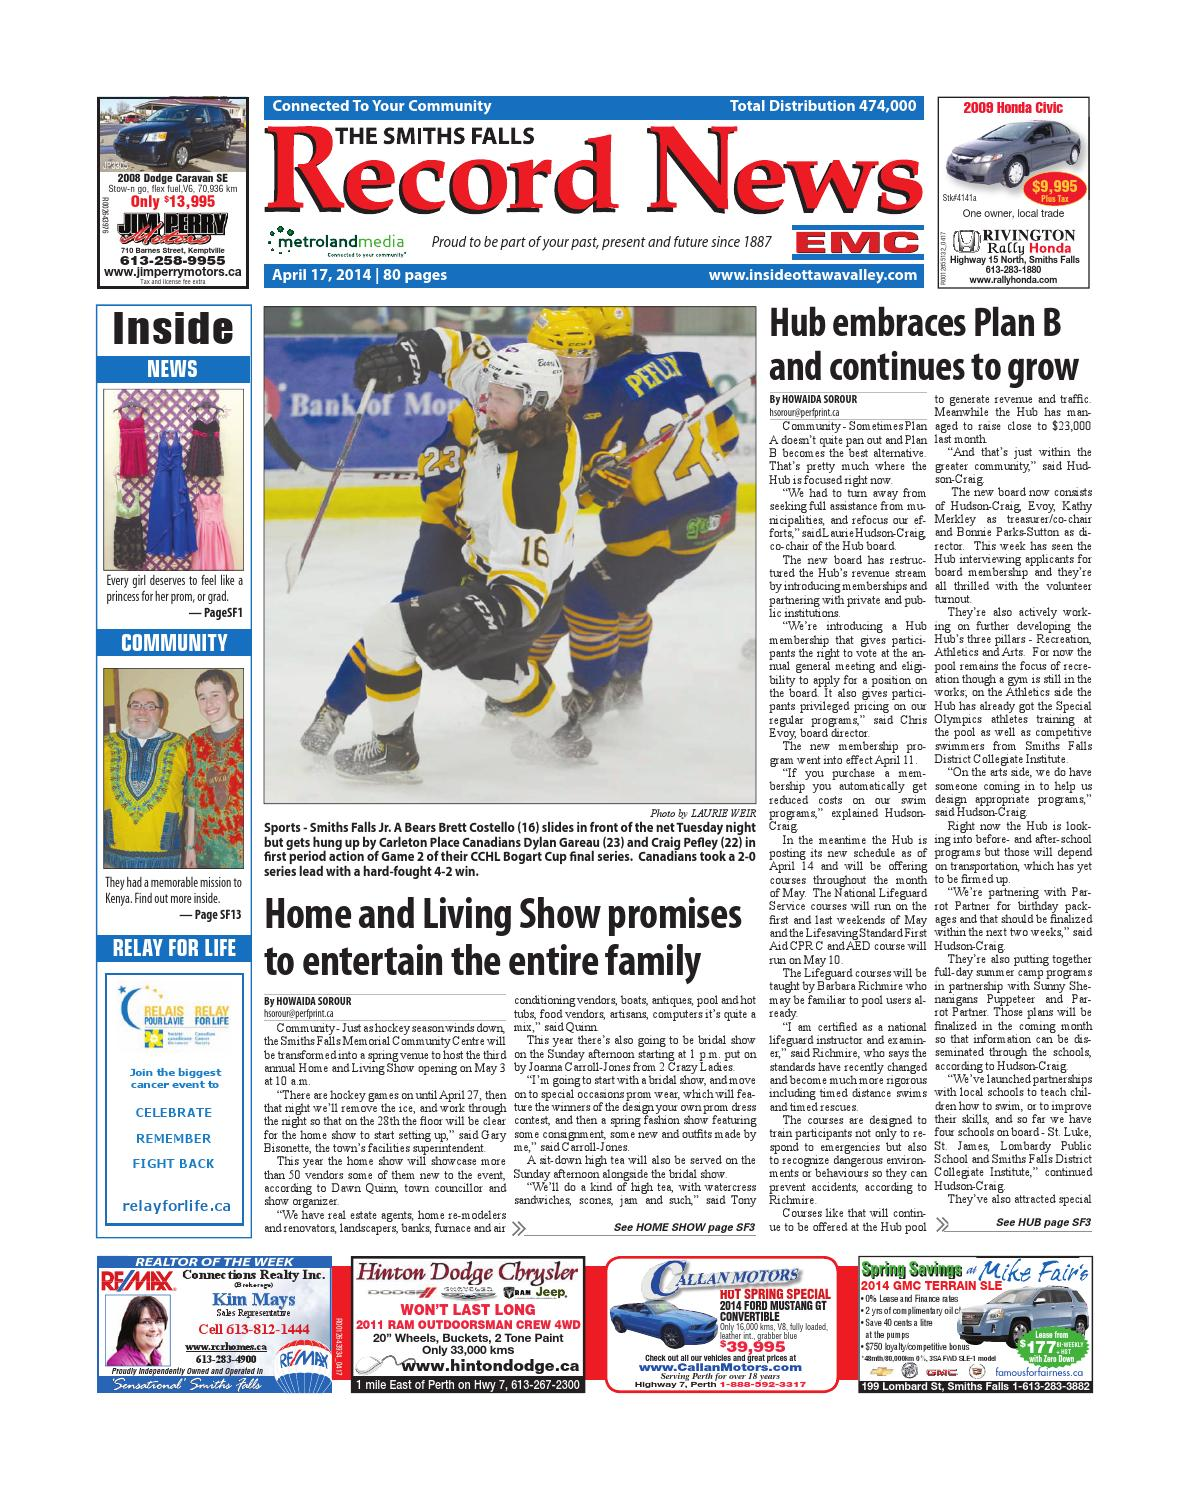 Smithsfalls041714 by Metroland East - Smiths Falls Record